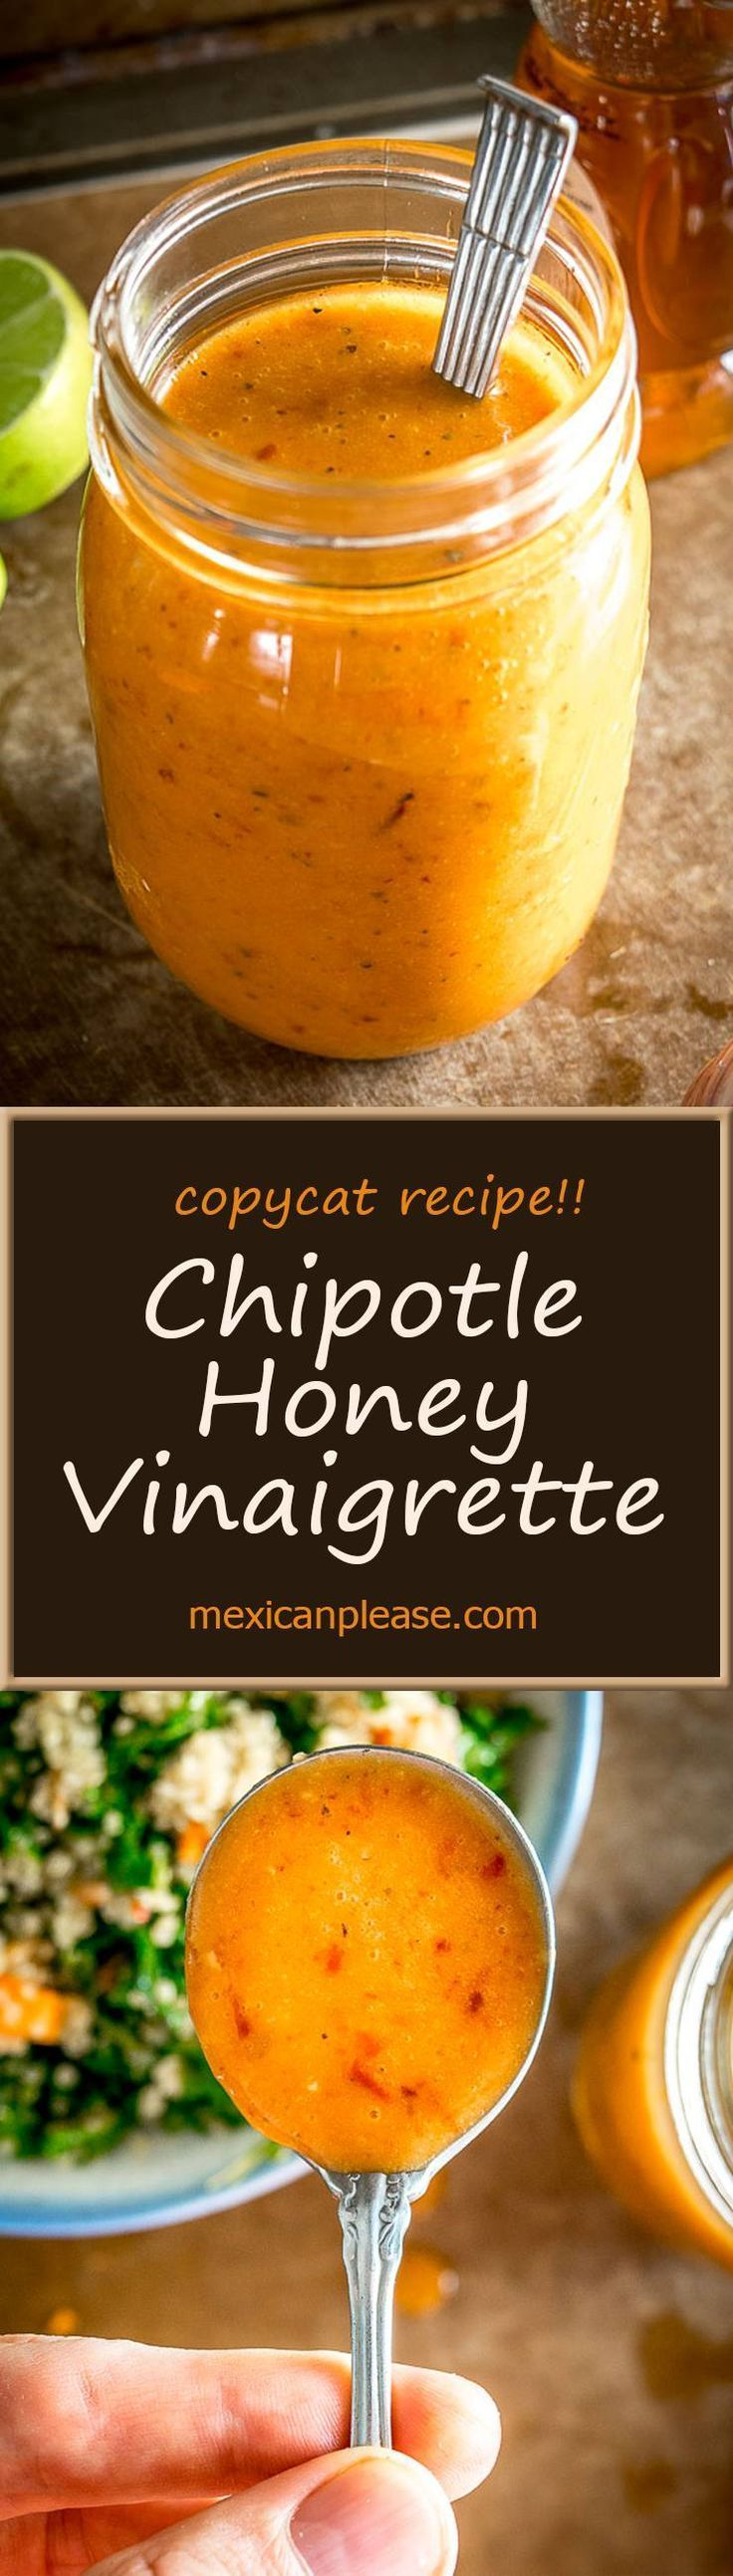 Here's an easy recipe to mimic the awesome Chipotle Honey Vinaigrette from Chipotle Mexican Grill.  It has a sweet, smoky flavor that'll make your salad sing.  A great all-purpose salad dressing!   me (Vegan Dip Mexican)